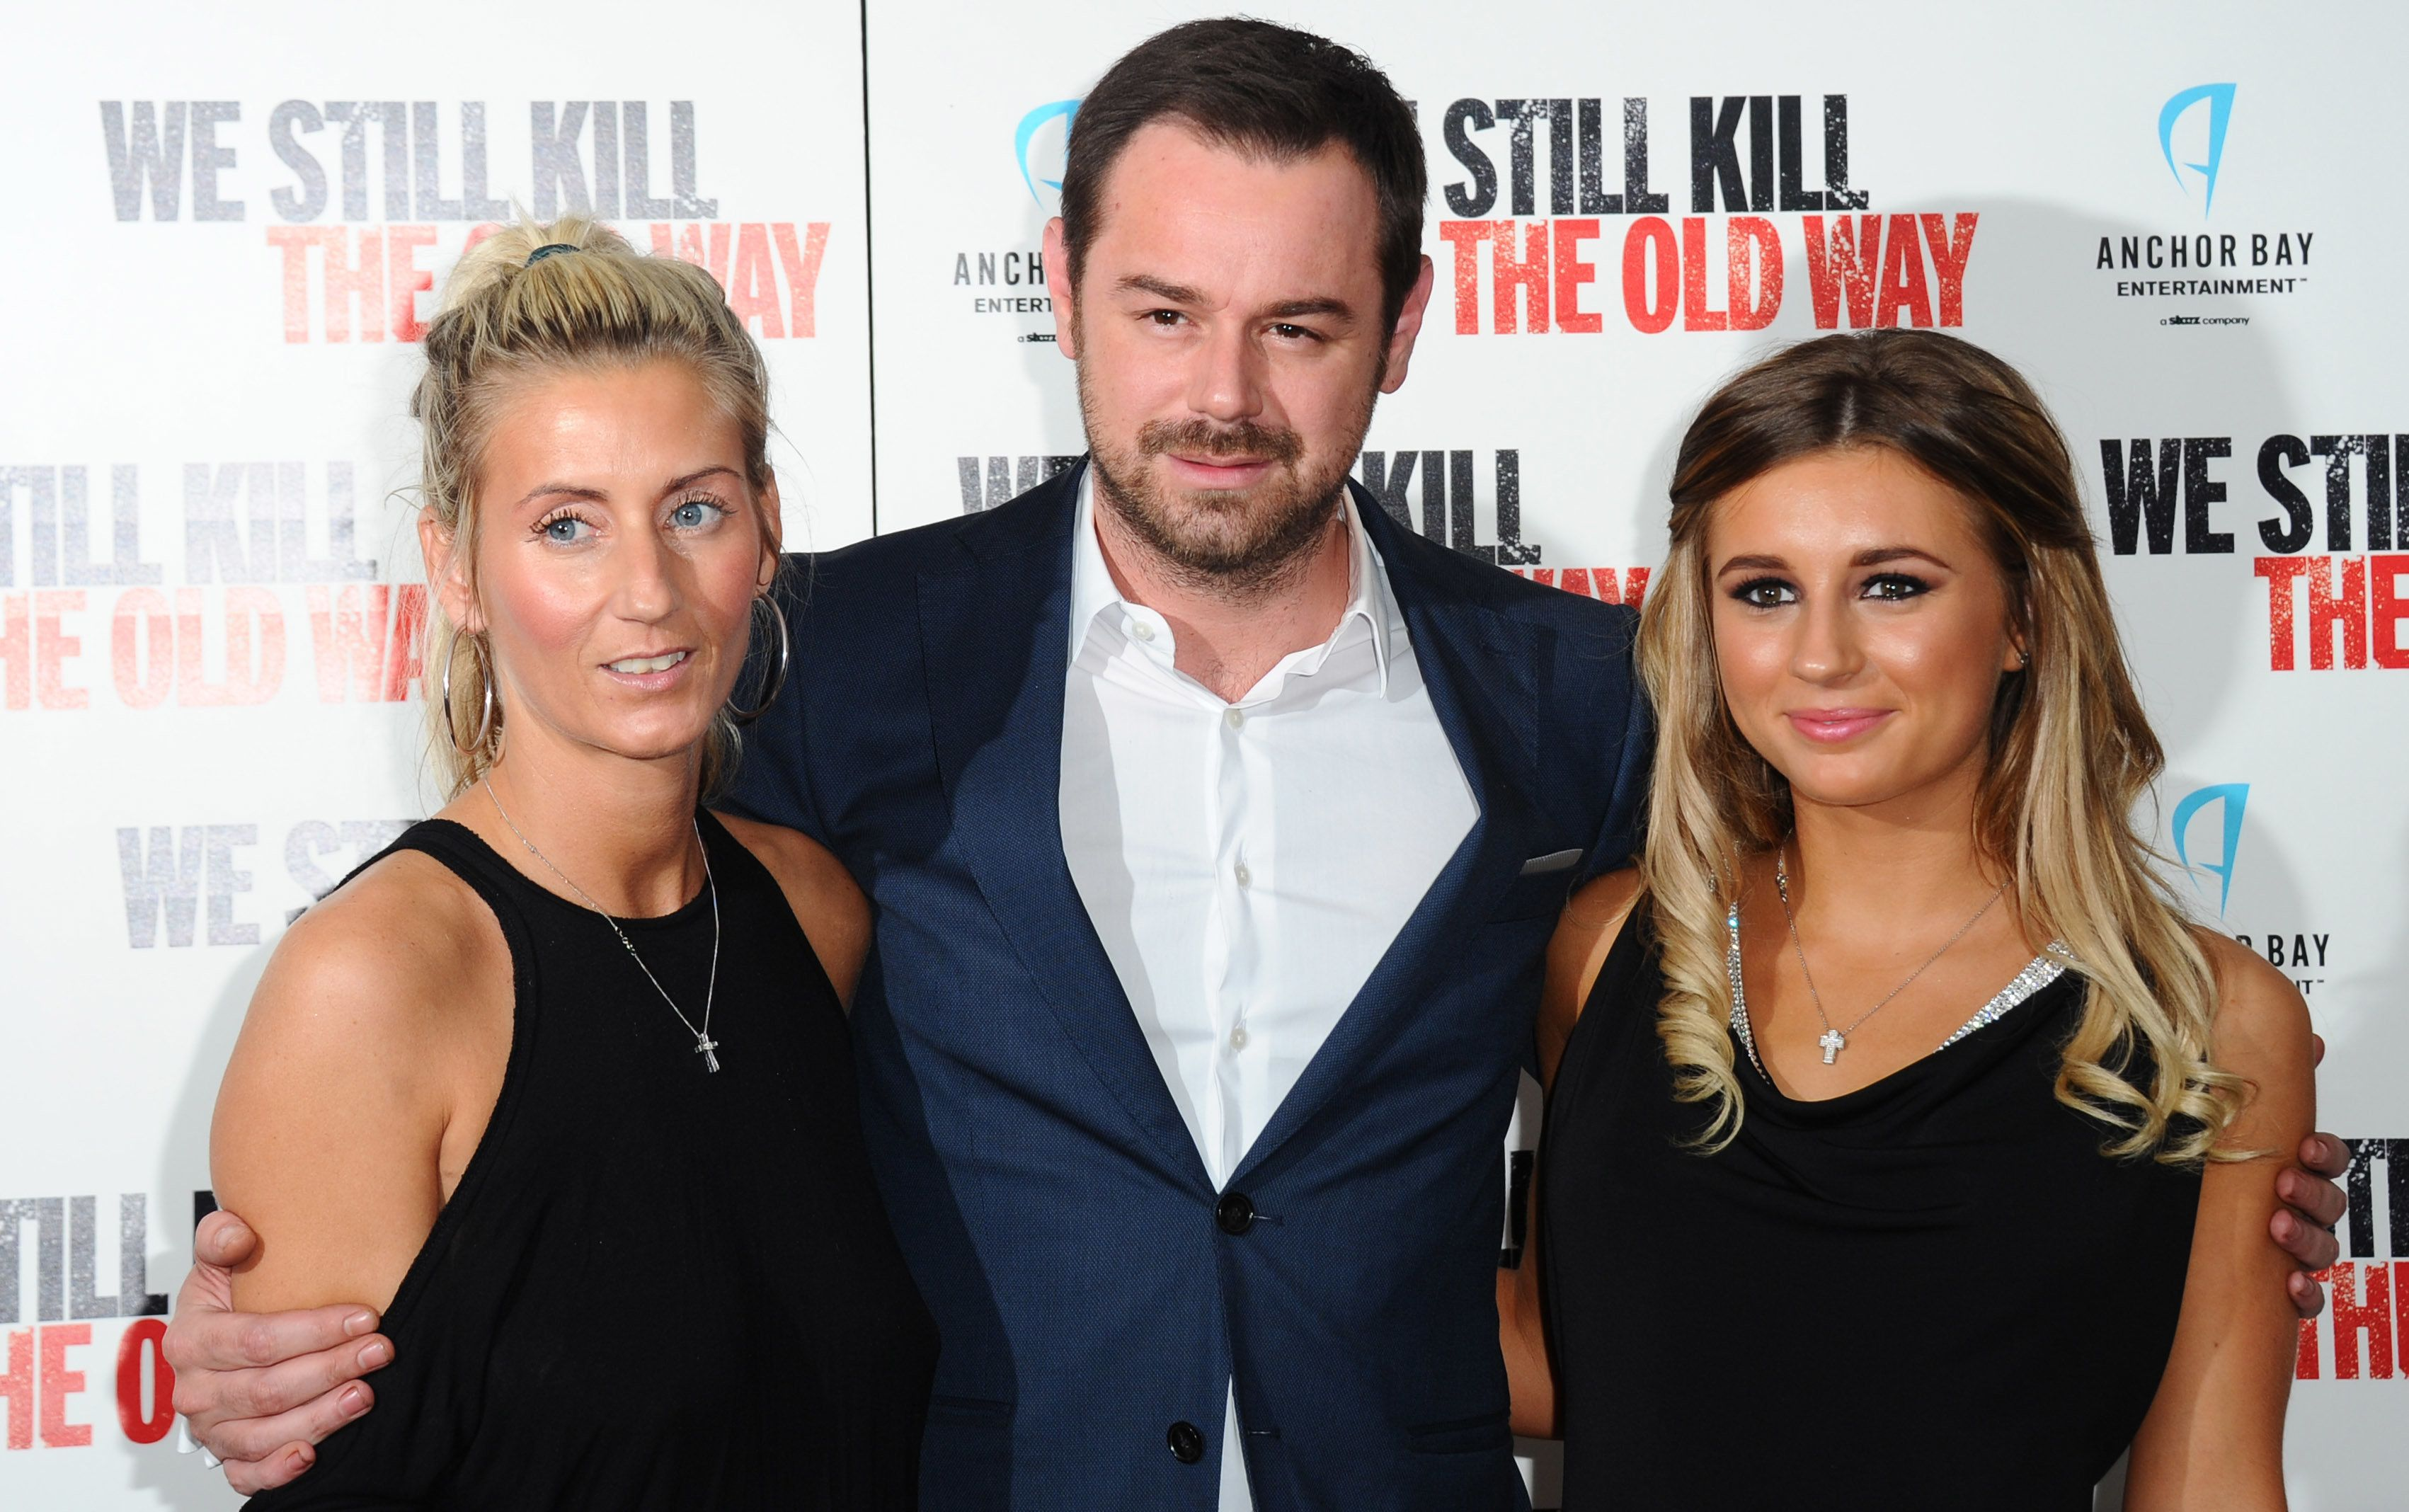 Joanne Mas Clarifies Conflicting Reports Husband Danny Dyer Is Making A Visit To 'Love Island'